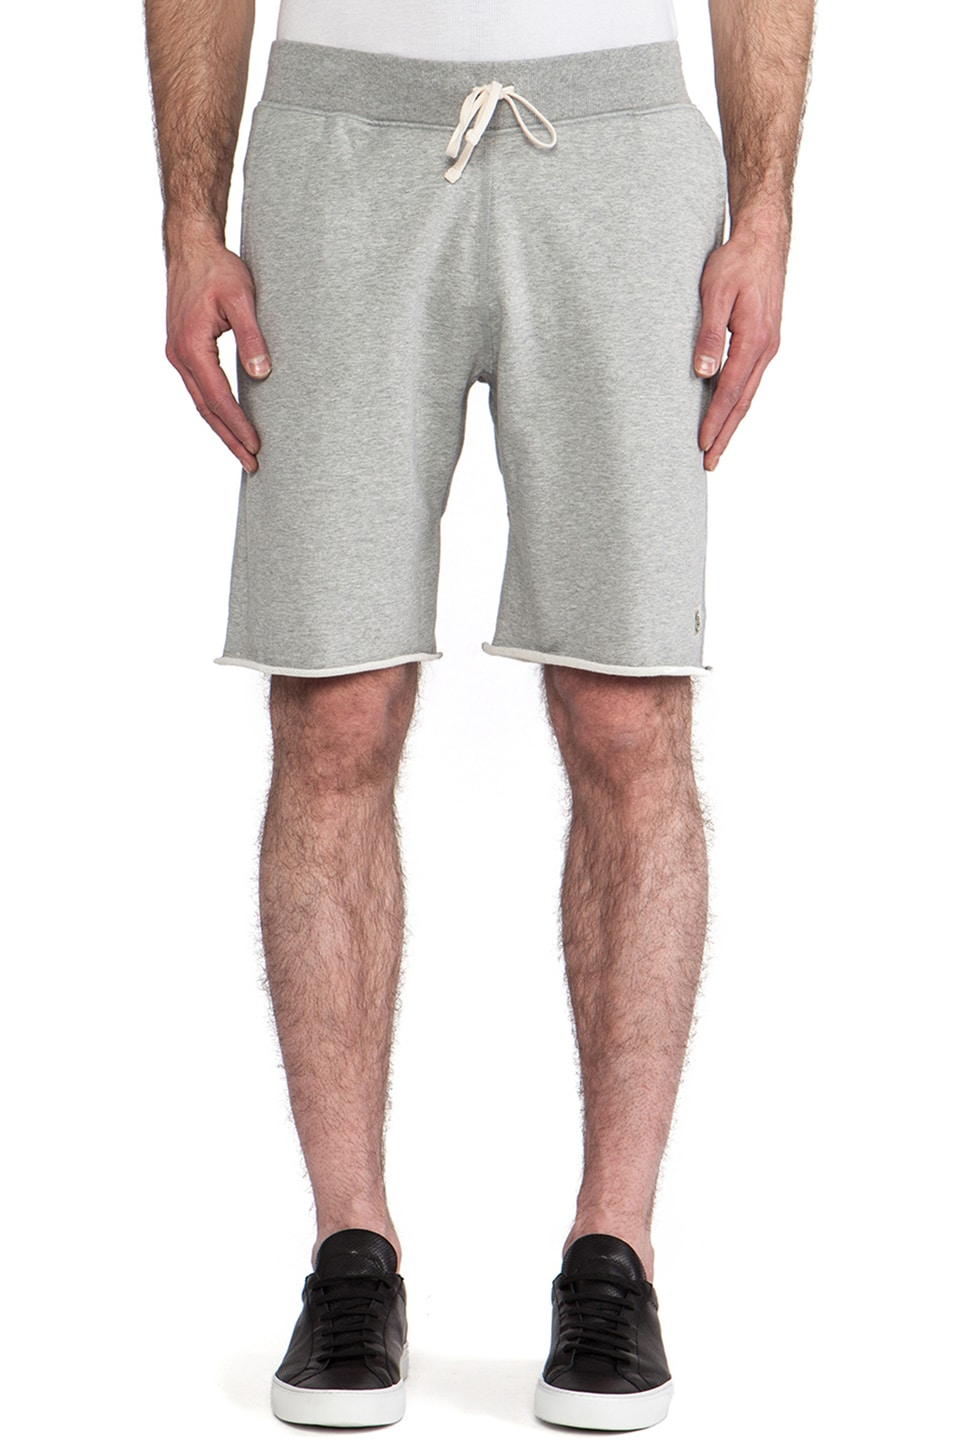 Reigning Champ x Everlast Sporting Goods Cut-Off Sweatshorts in Heather Grey